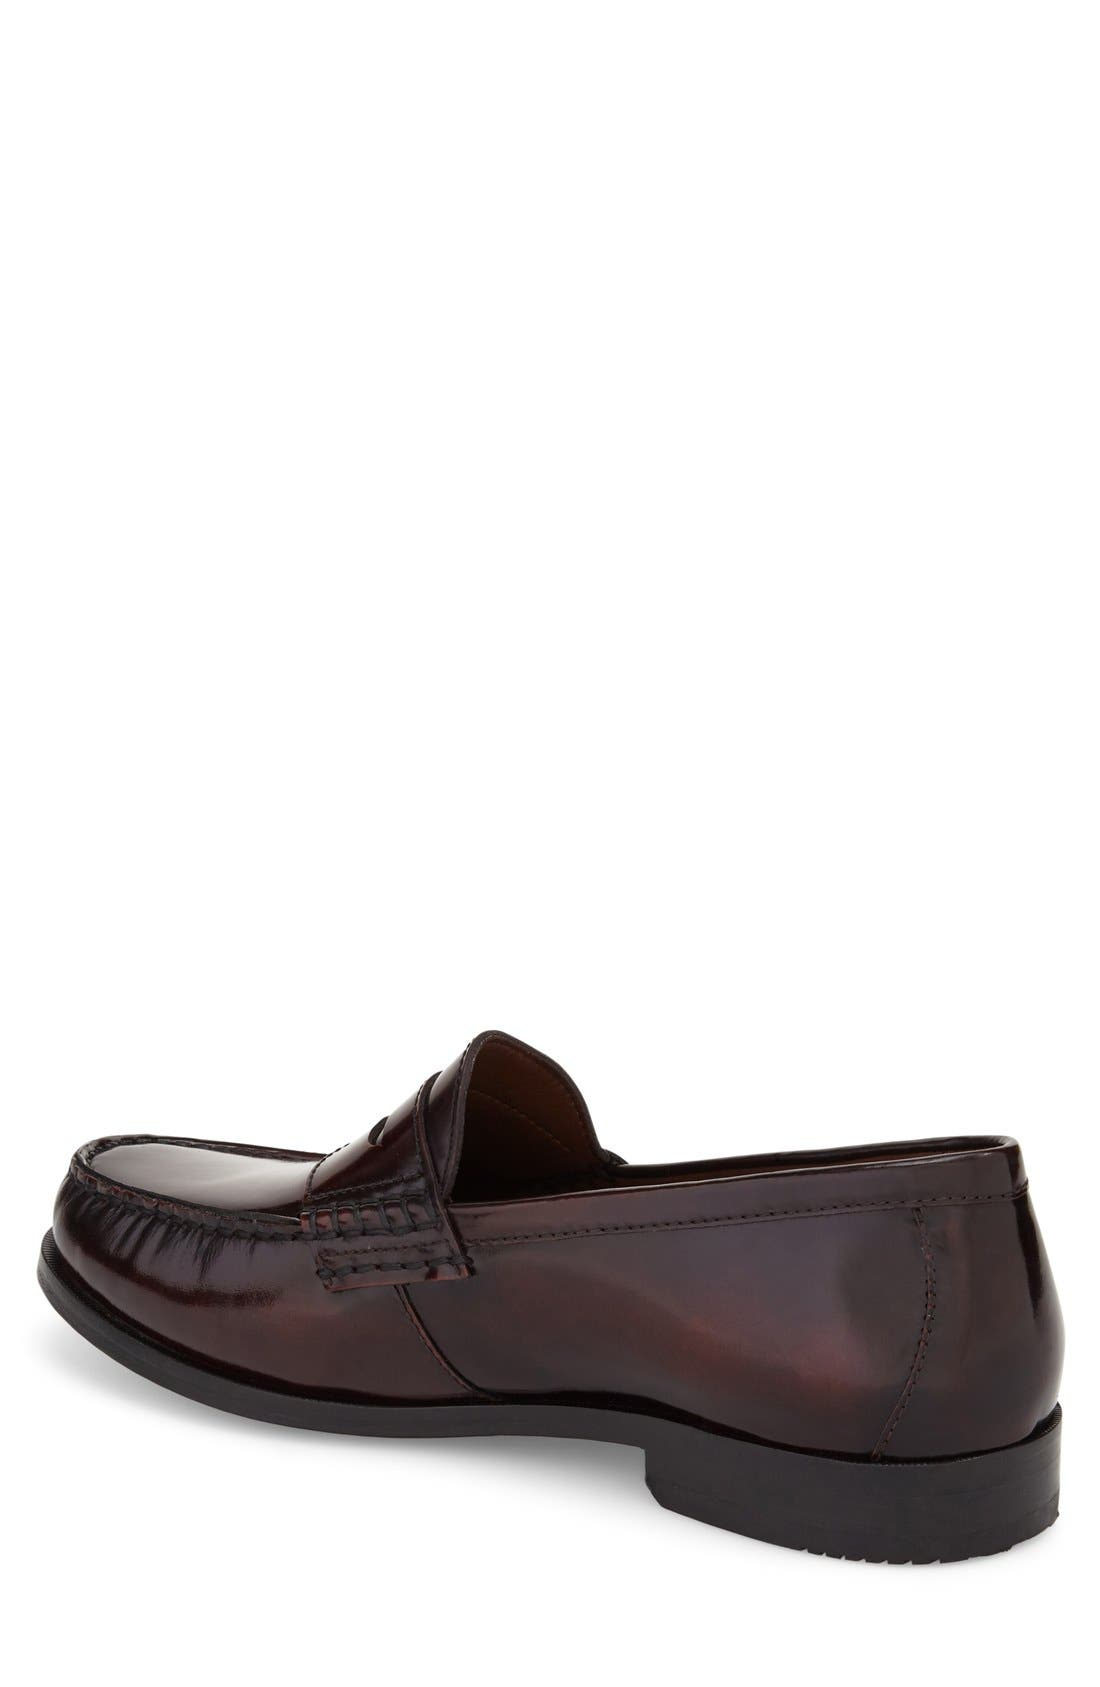 Pannell Penny Loafer,                             Alternate thumbnail 2, color,                             Burgundy Leather